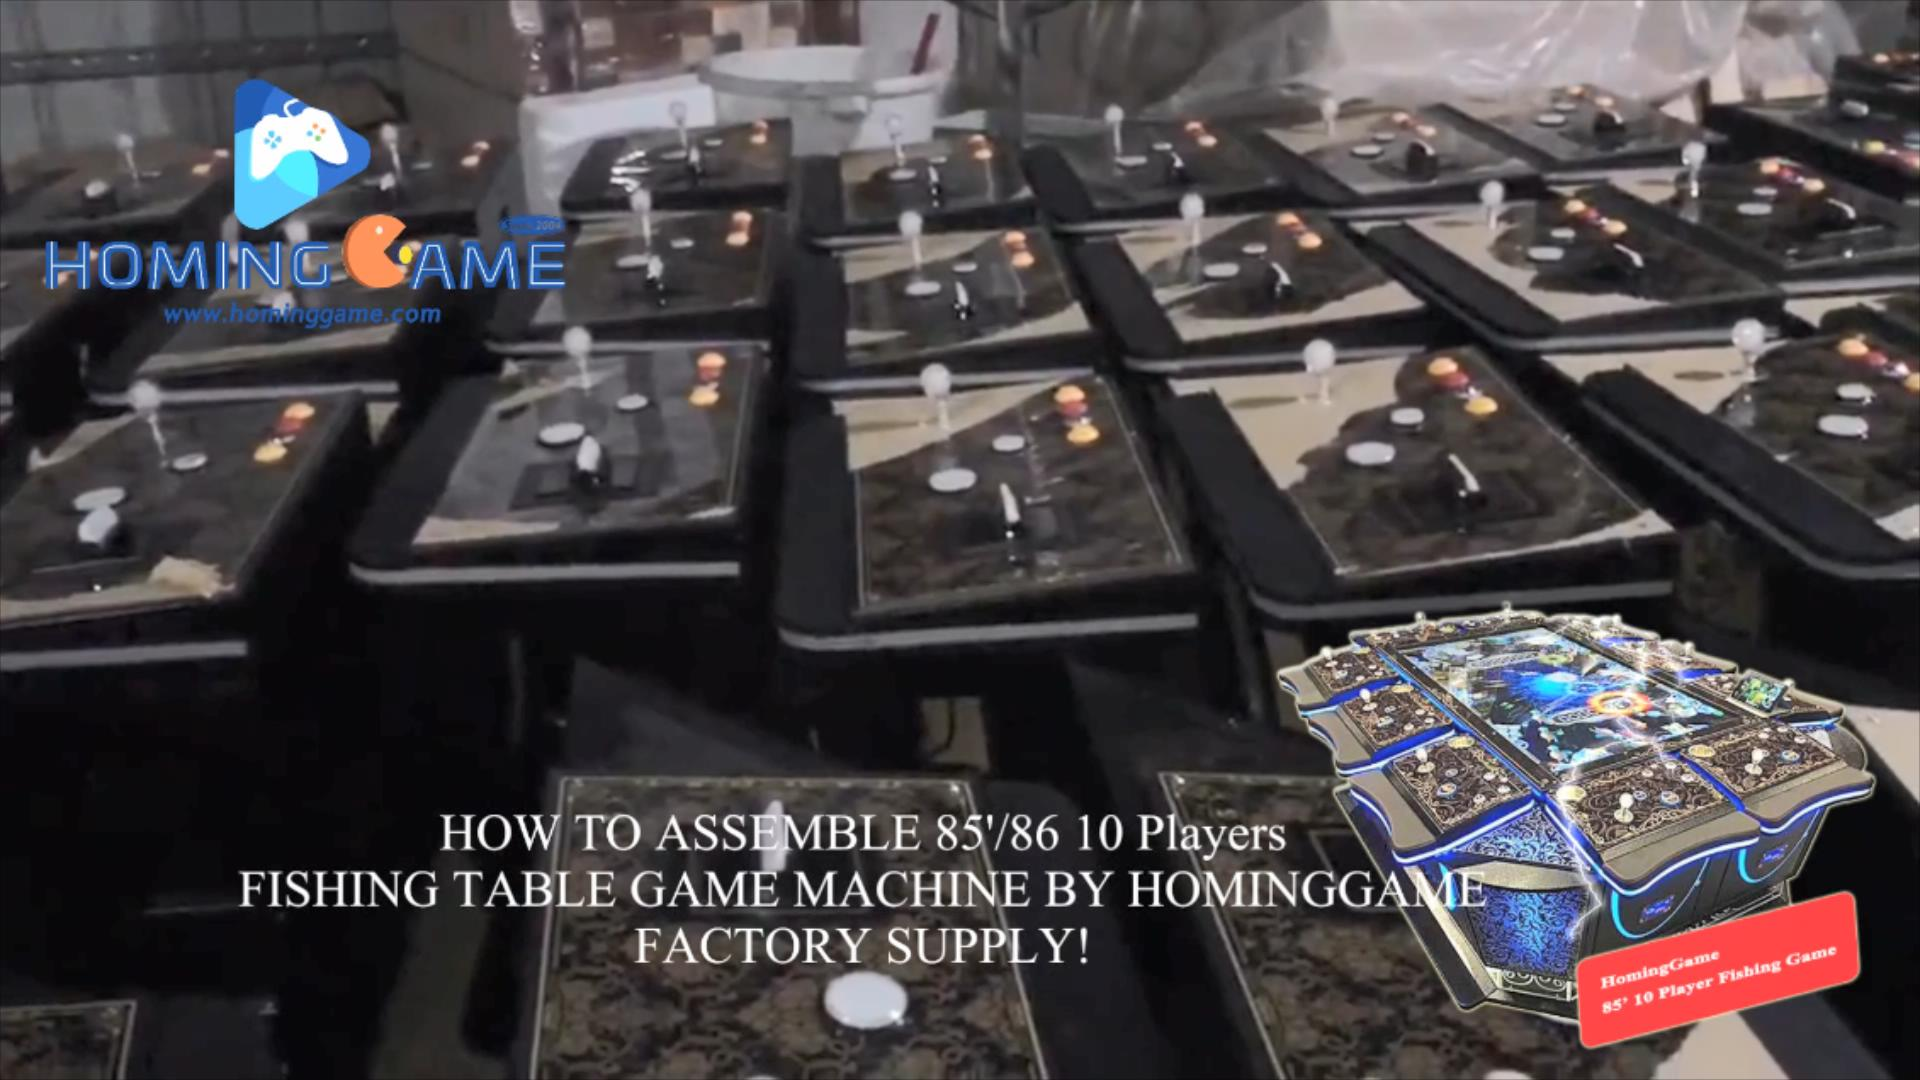 How To Assemble 85 86 Large Screen 10 Players Fishing Table Game Machine Hot Fishing Game In USA By HomingGame Factory Supply !!(Order Call Whatsapp:+8618688409495- Sales@hominggame.com),85' 10 players fishing table game machine,85' large screen 10 player fishing game machine,85' screen 10 player fishing game machine,85' screen fishing game machine,85' fishing table game machine,10 player fishing game machine,10 player fishing table game machine,fishing game,fishing table game machine,fishing game machine,ocean king fishing game machine,ocean king 3 fishing game machine,ocean king 3 monster awaken fishing game machine,ocean king 3 fire phoenix fishing game machine,dragon king fishing game machine,dragon hunter fishing game machine,ocean king 2 golden legend fishing game machine,ocean monster fishing game machine,kongfu panda fishing game machine,rampage fishing game machine,tiger strike fishing game machine,fire kylin fishing game machine,gaming machine,gambling machine,fish hunter fishing game machine,ocean monster fishing game,hominggame,www.gametube.hk,entertainment game machine,game machine,arcade game machine,arcade game machine for sale,indoor game machine,amsuement machine,hominggames,casino gaming machine,casino machine,slot machine,slot game machine,8 palyer fishing table game machine,fishing game machine decoder box,fishing game decoder box,how to play the fishing game machine